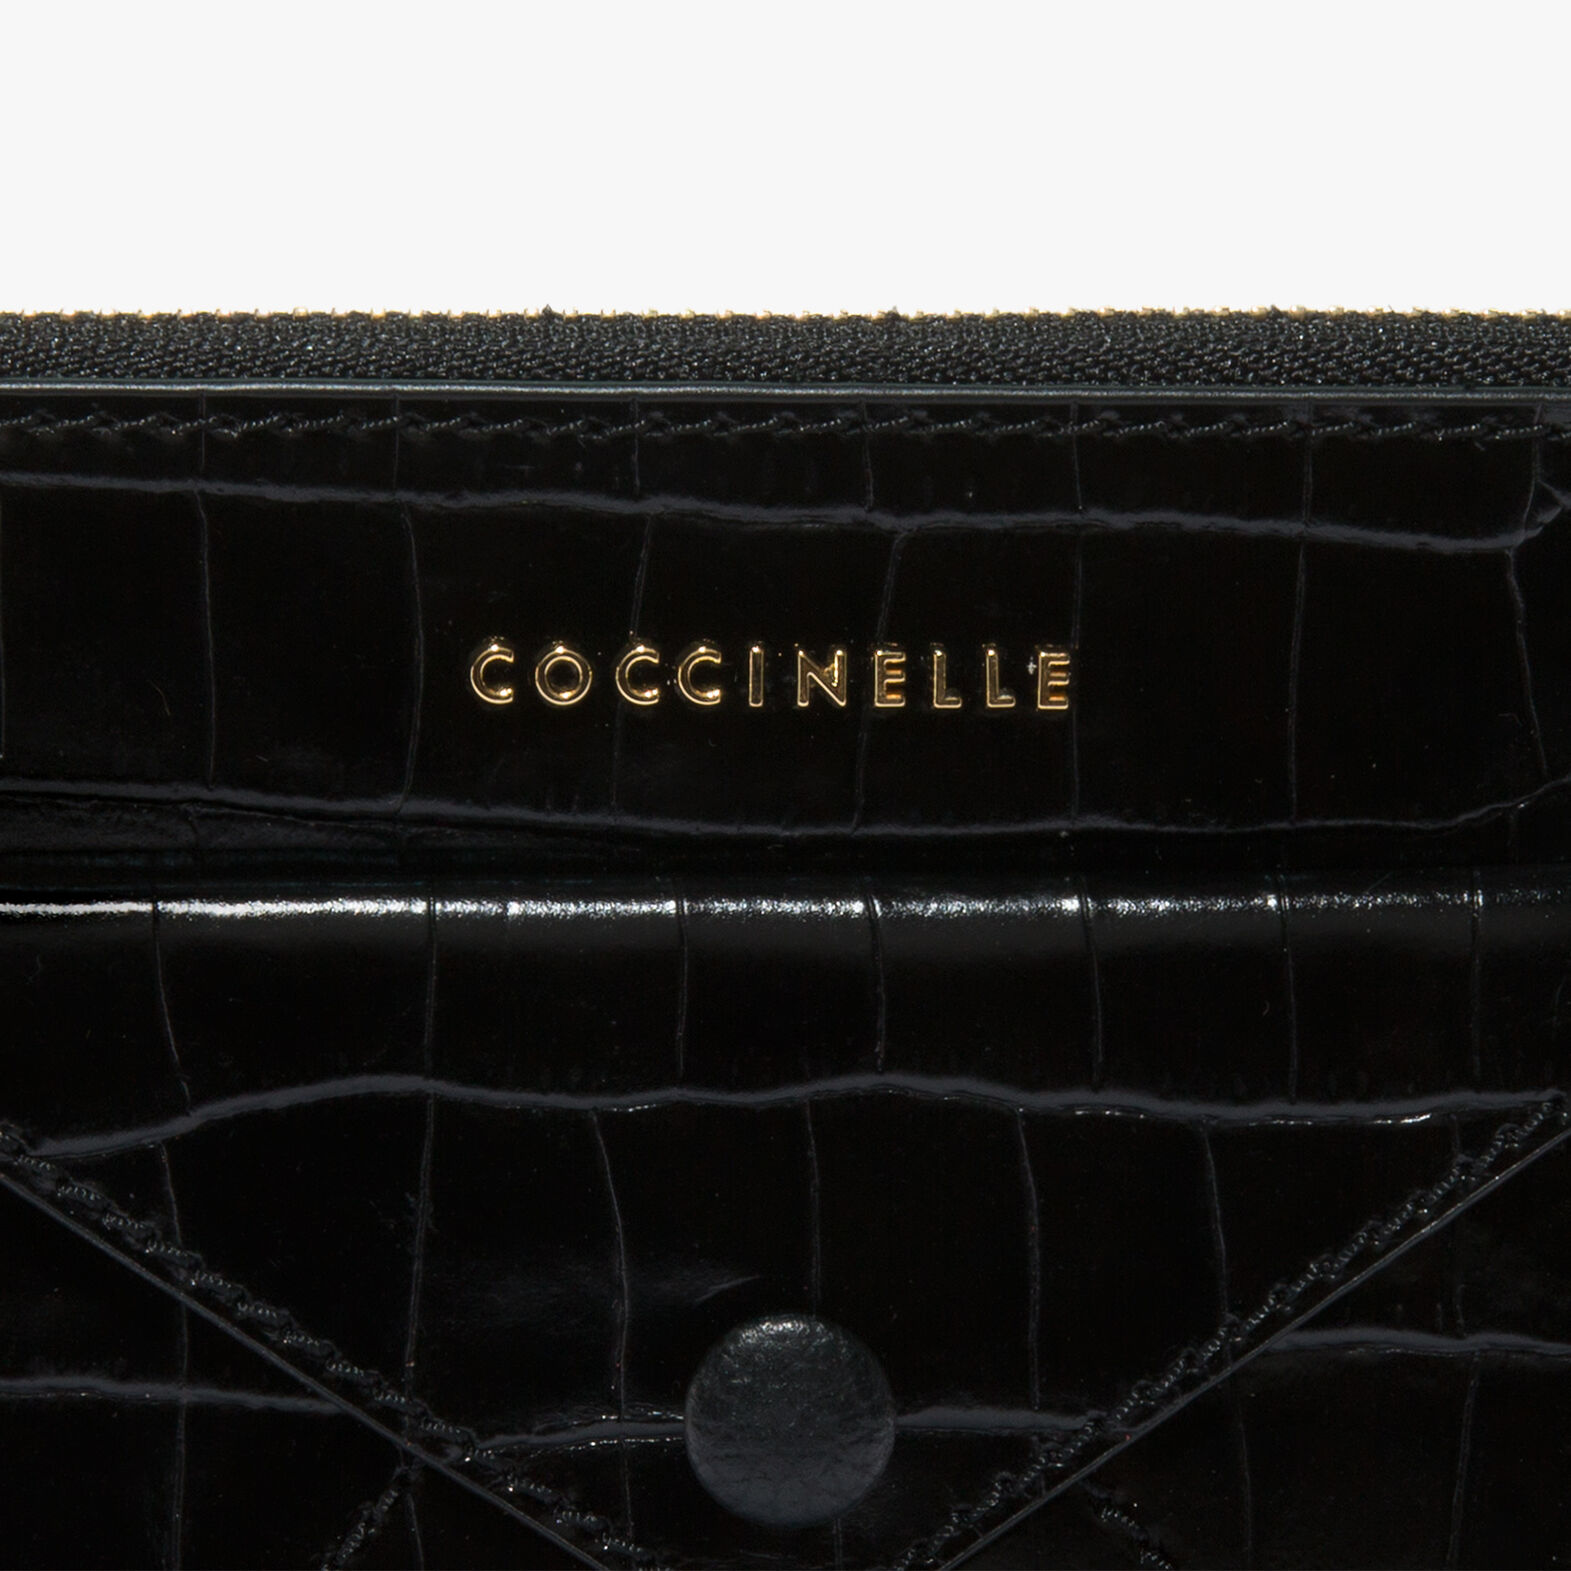 Coccinelle Crocodile-print leather clutch